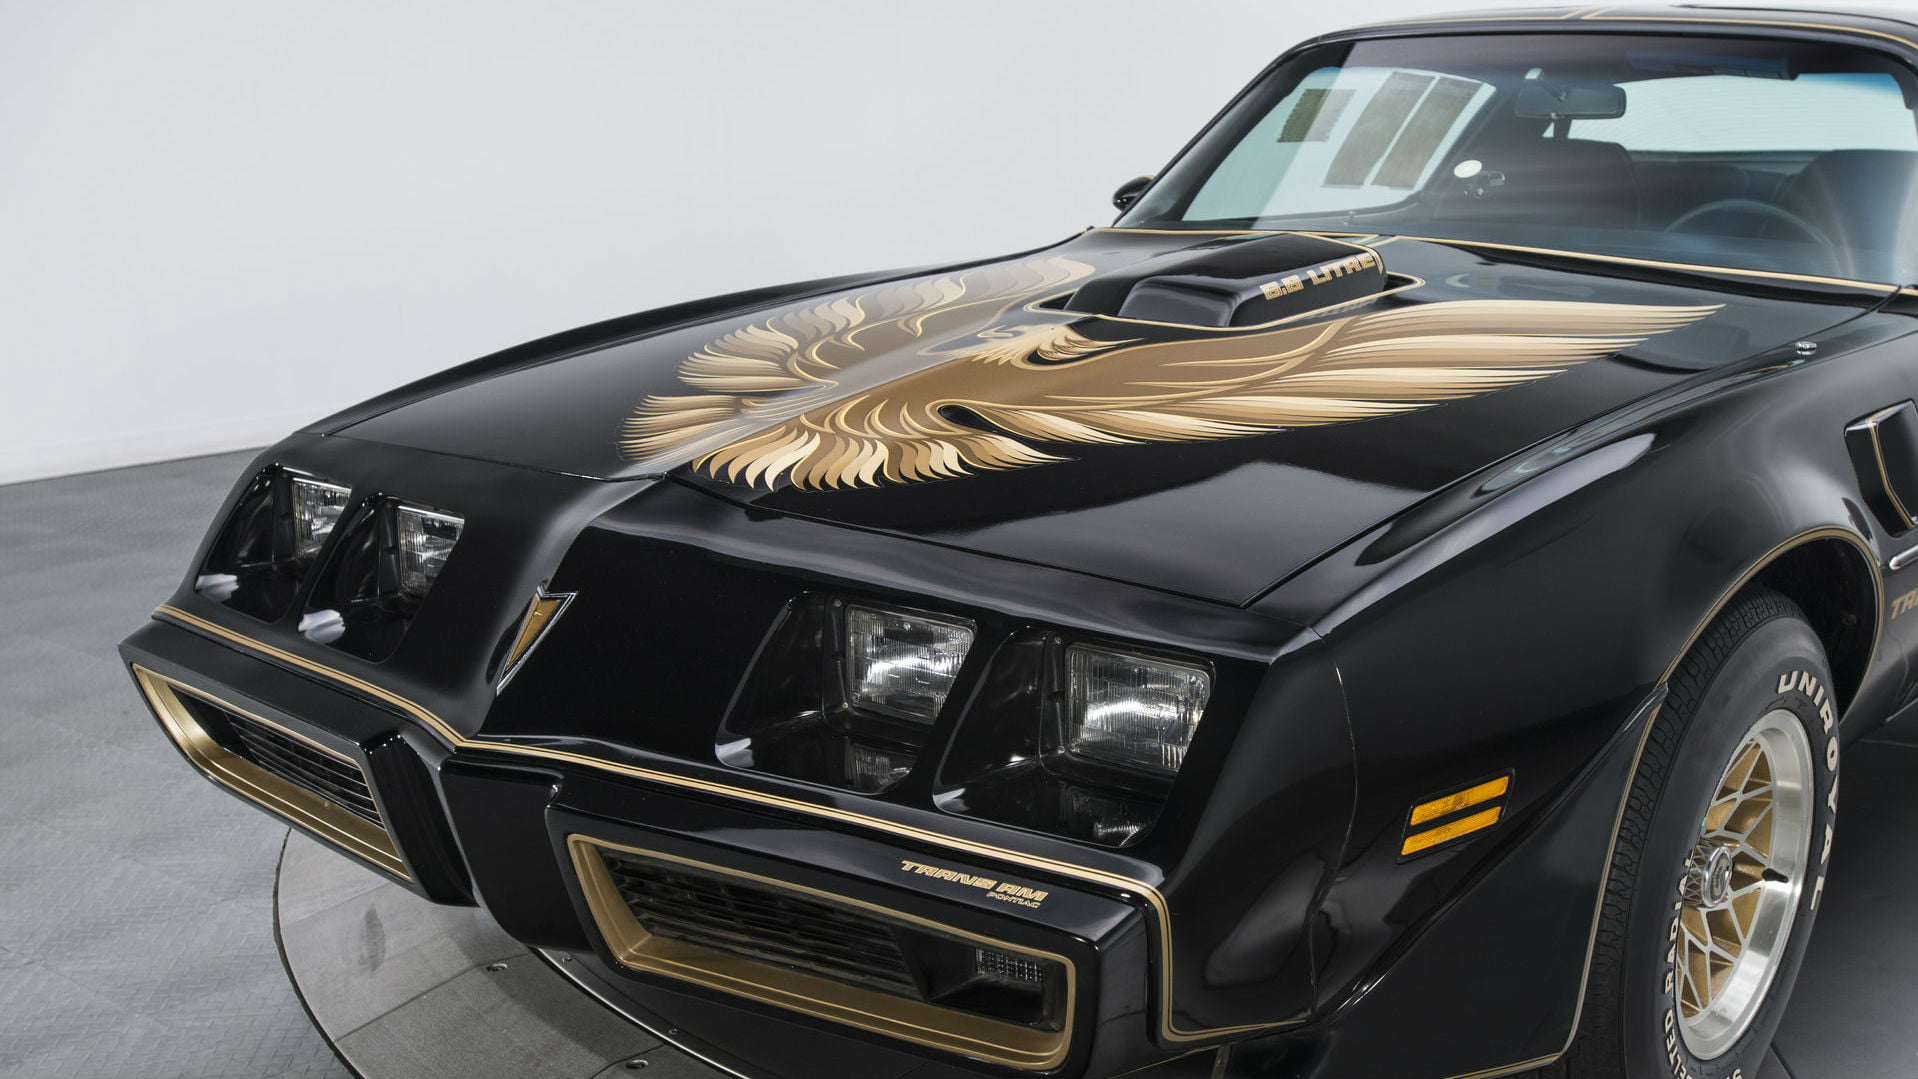 1979 Trans Am Picture This Scorching 1979 Pontiac Firebird Only Has 65 Miles On The